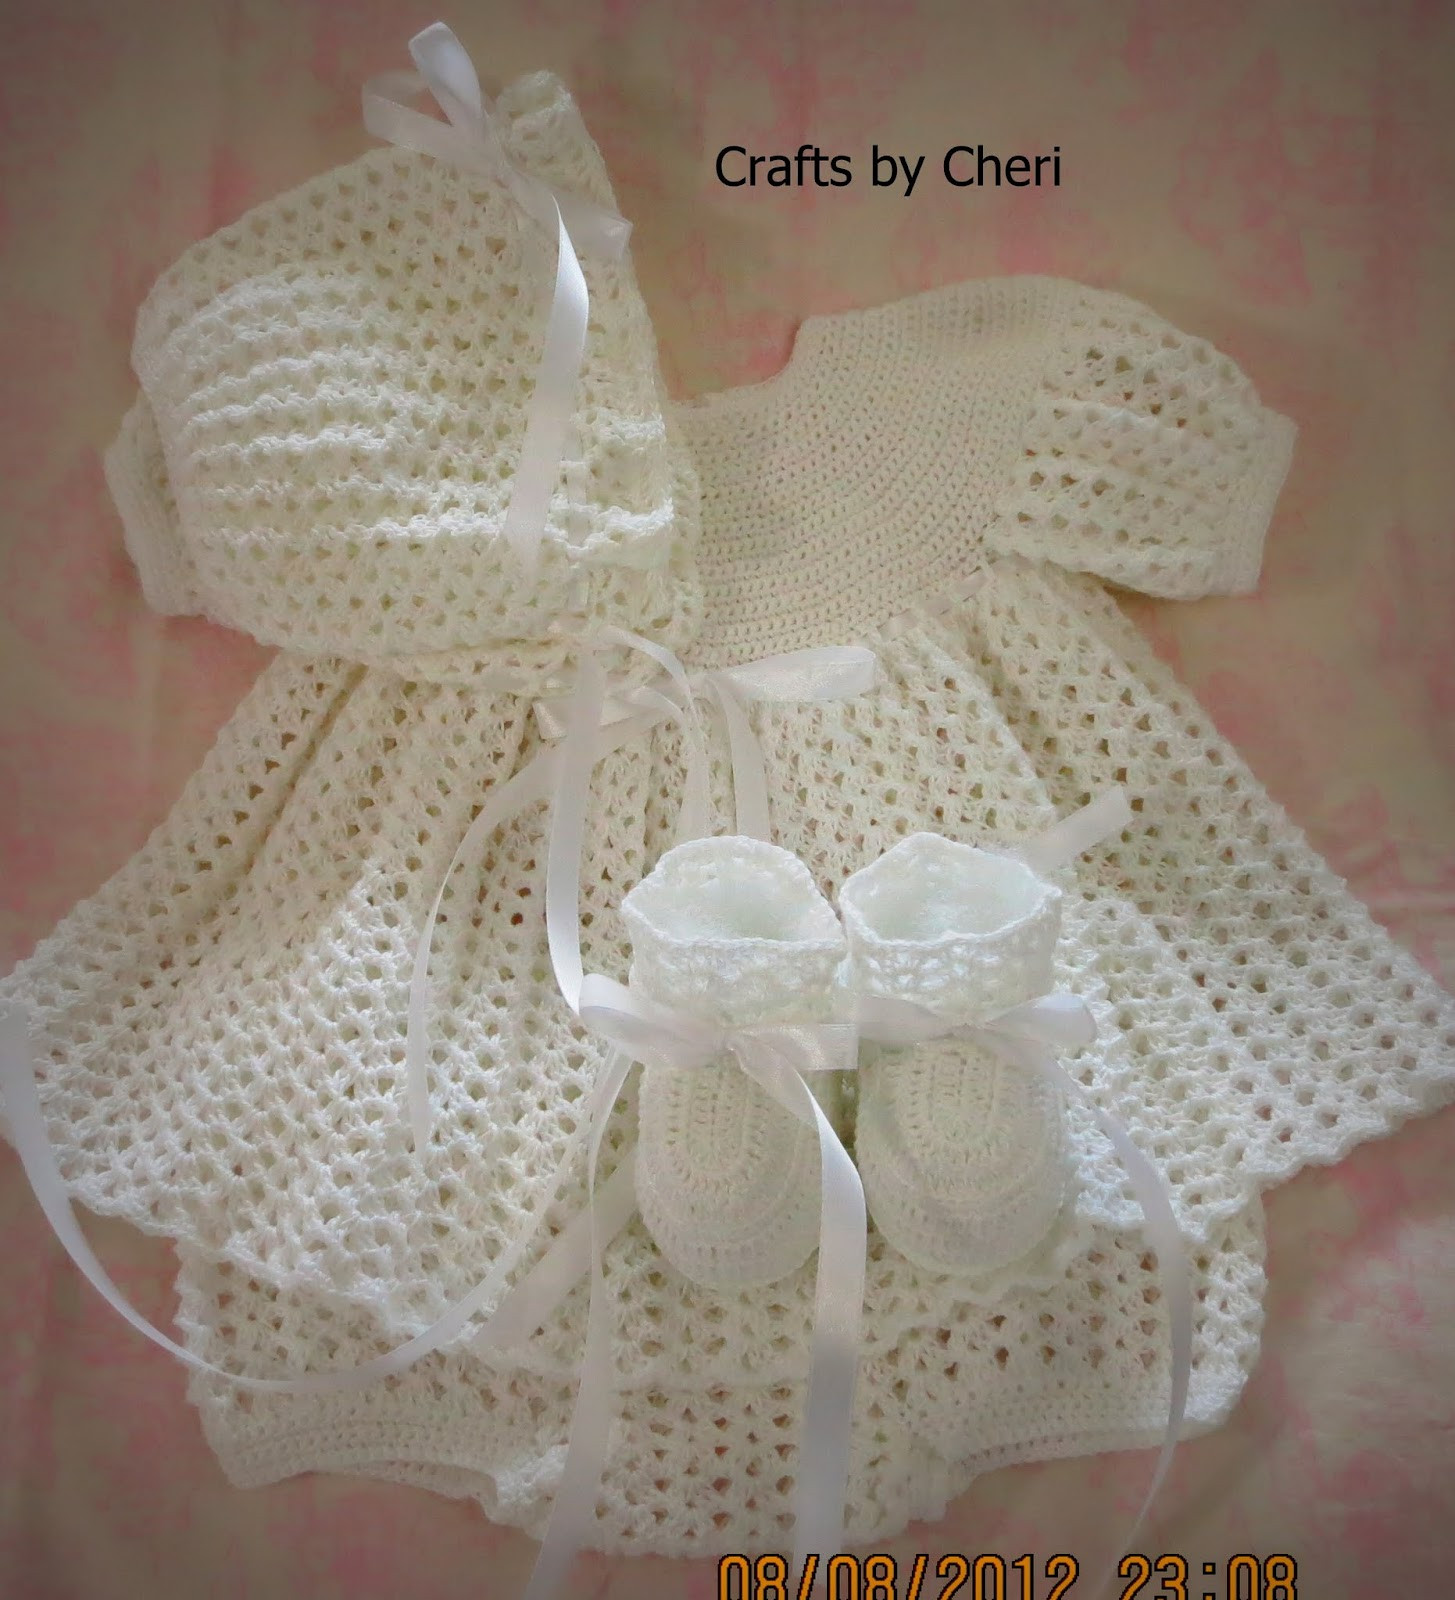 Awesome Cheri S Crochet Baby or Reborn Baby Doll Clothing or Crochet for Baby Of New 46 Pictures Crochet for Baby